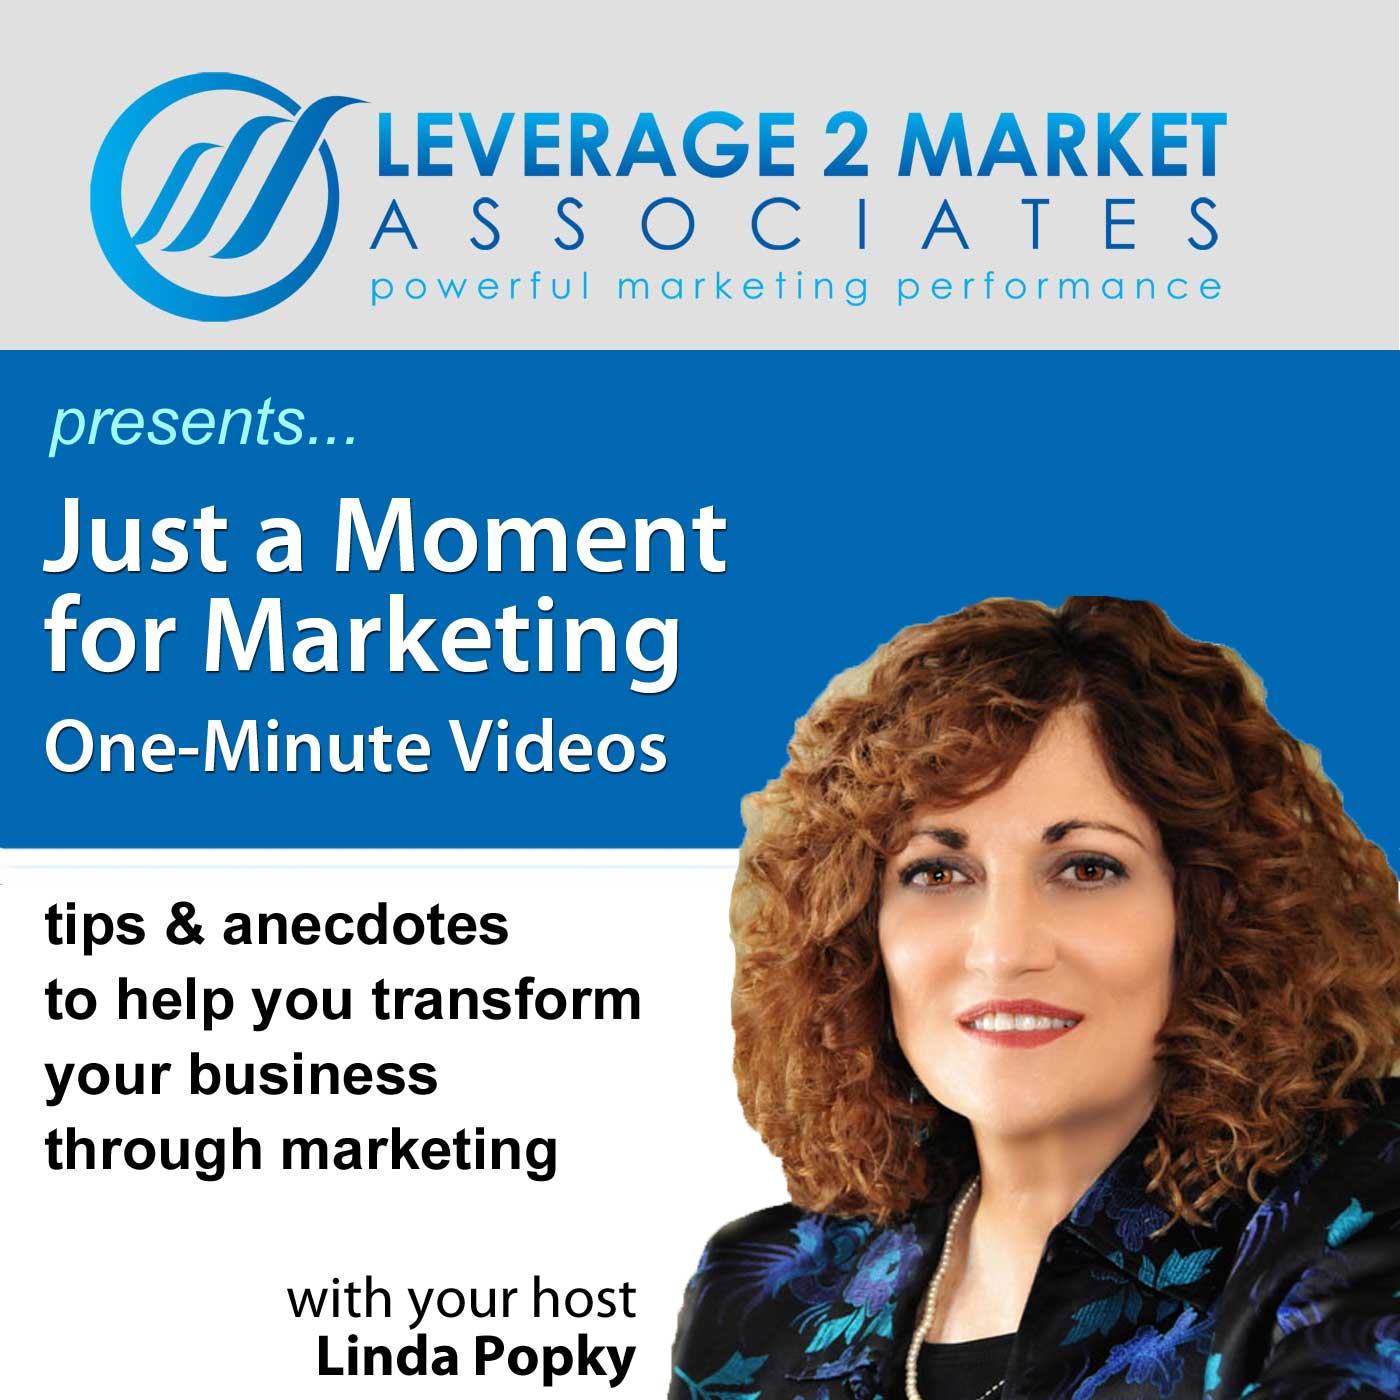 Just a Moment for Marketing Video Podcast - Linda Popky